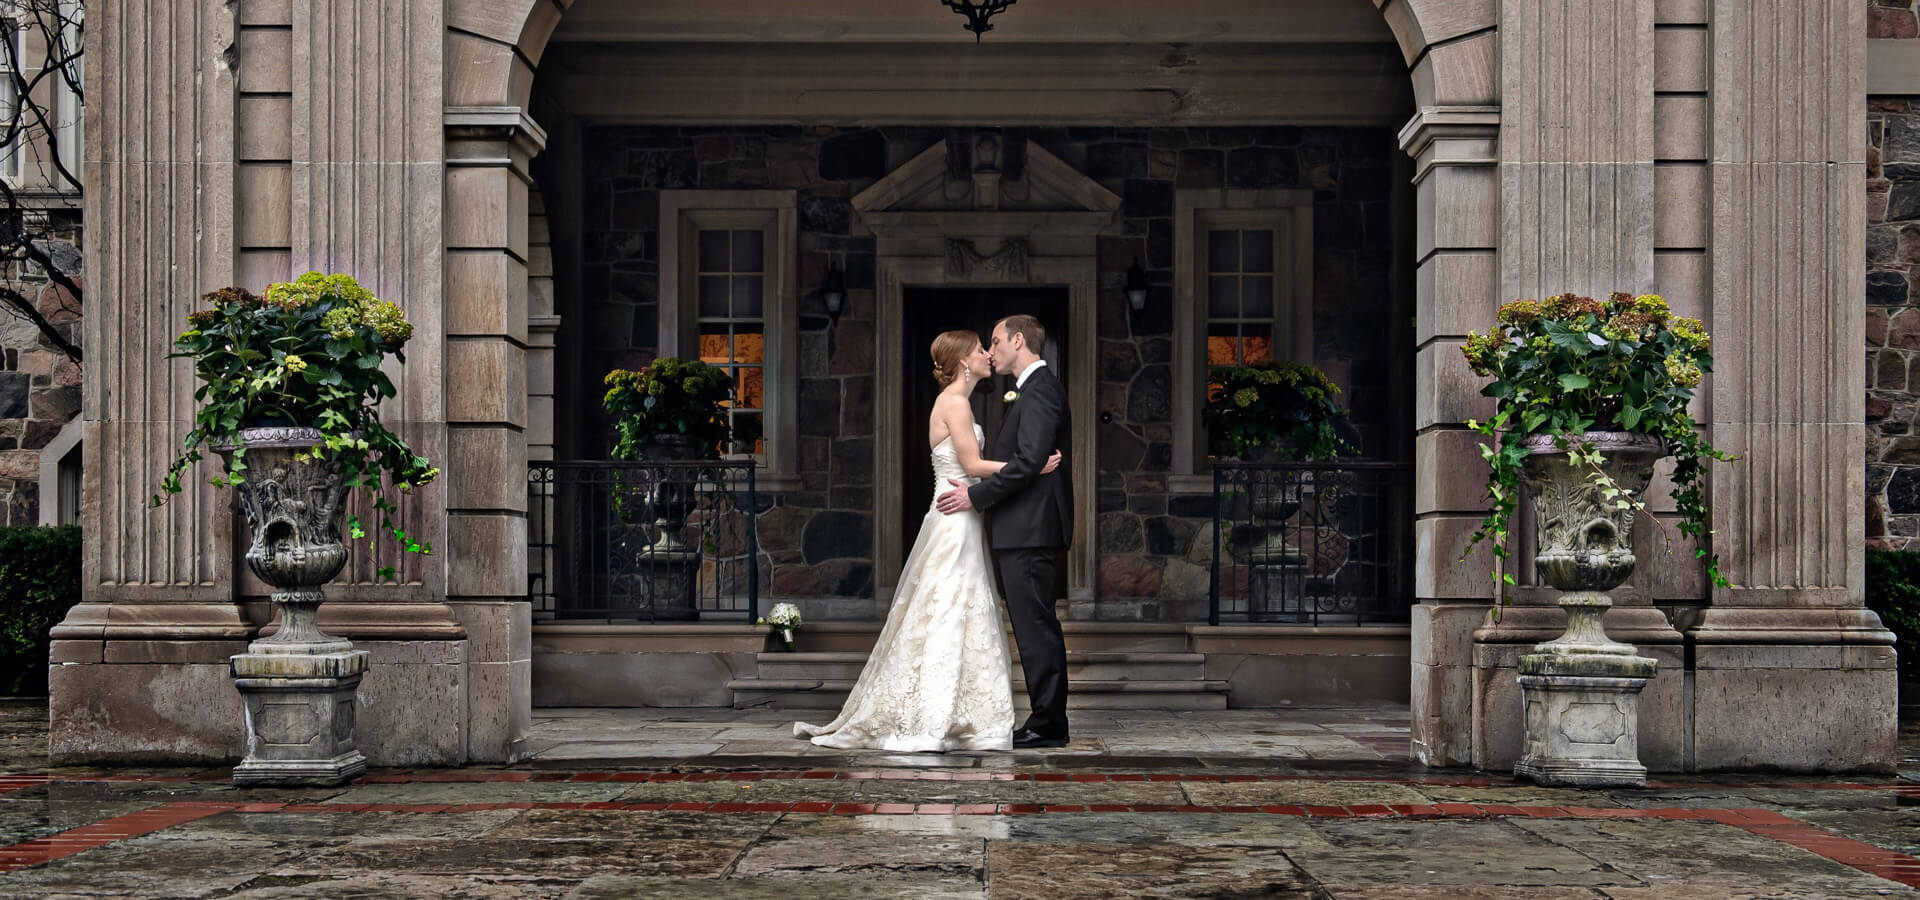 Hero image for Cheyne & Greg Intimate Wedding At Graydon Hall